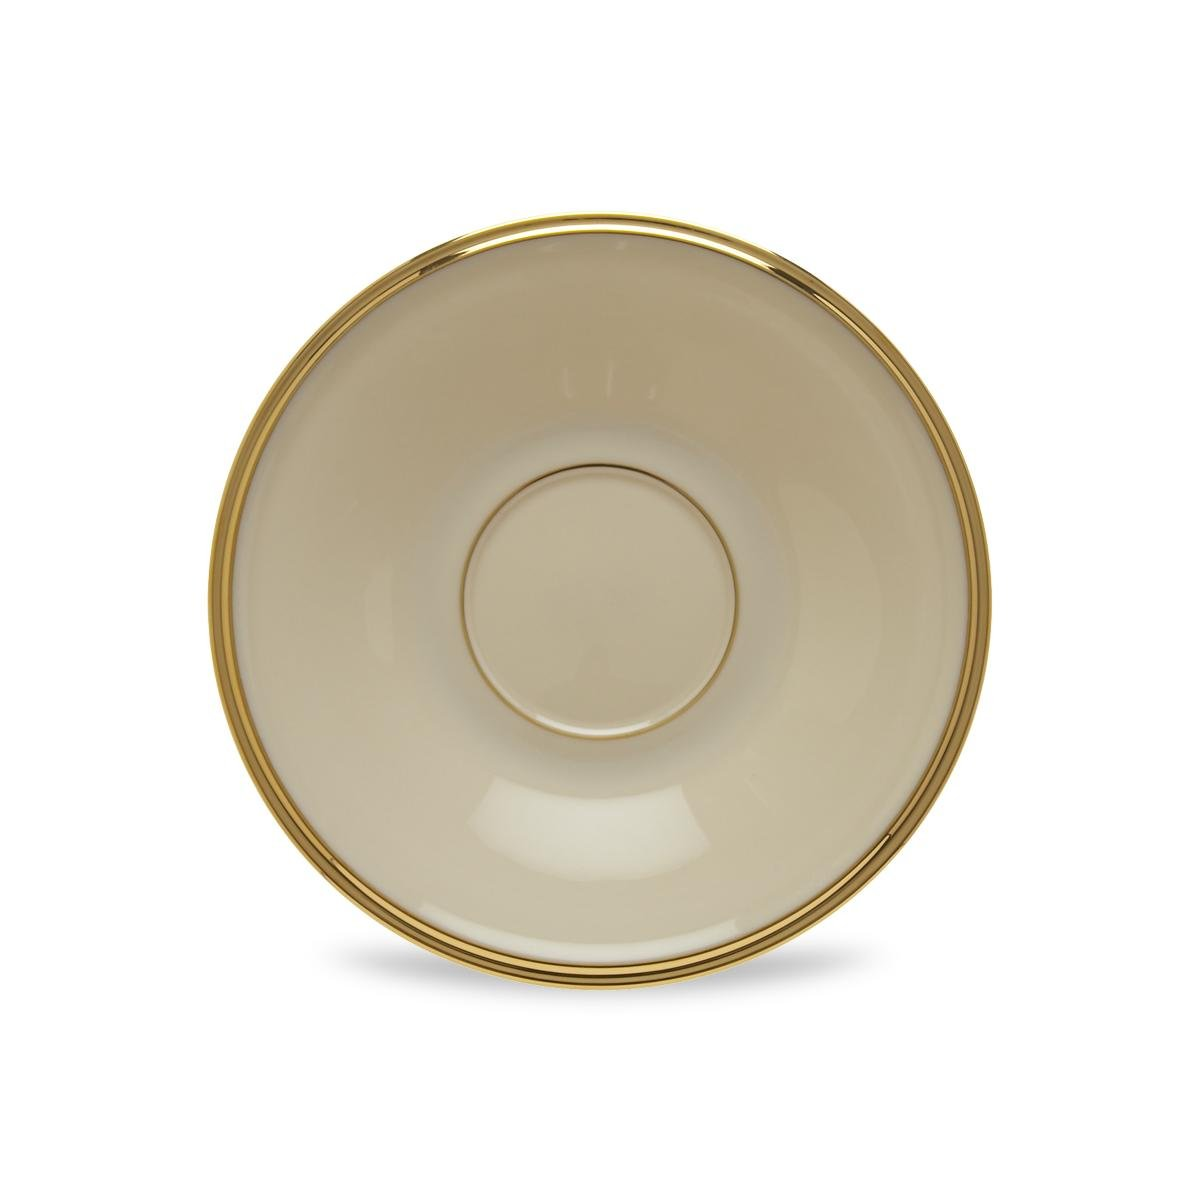 Lenox Eternal 6-Inch Tea Saucer